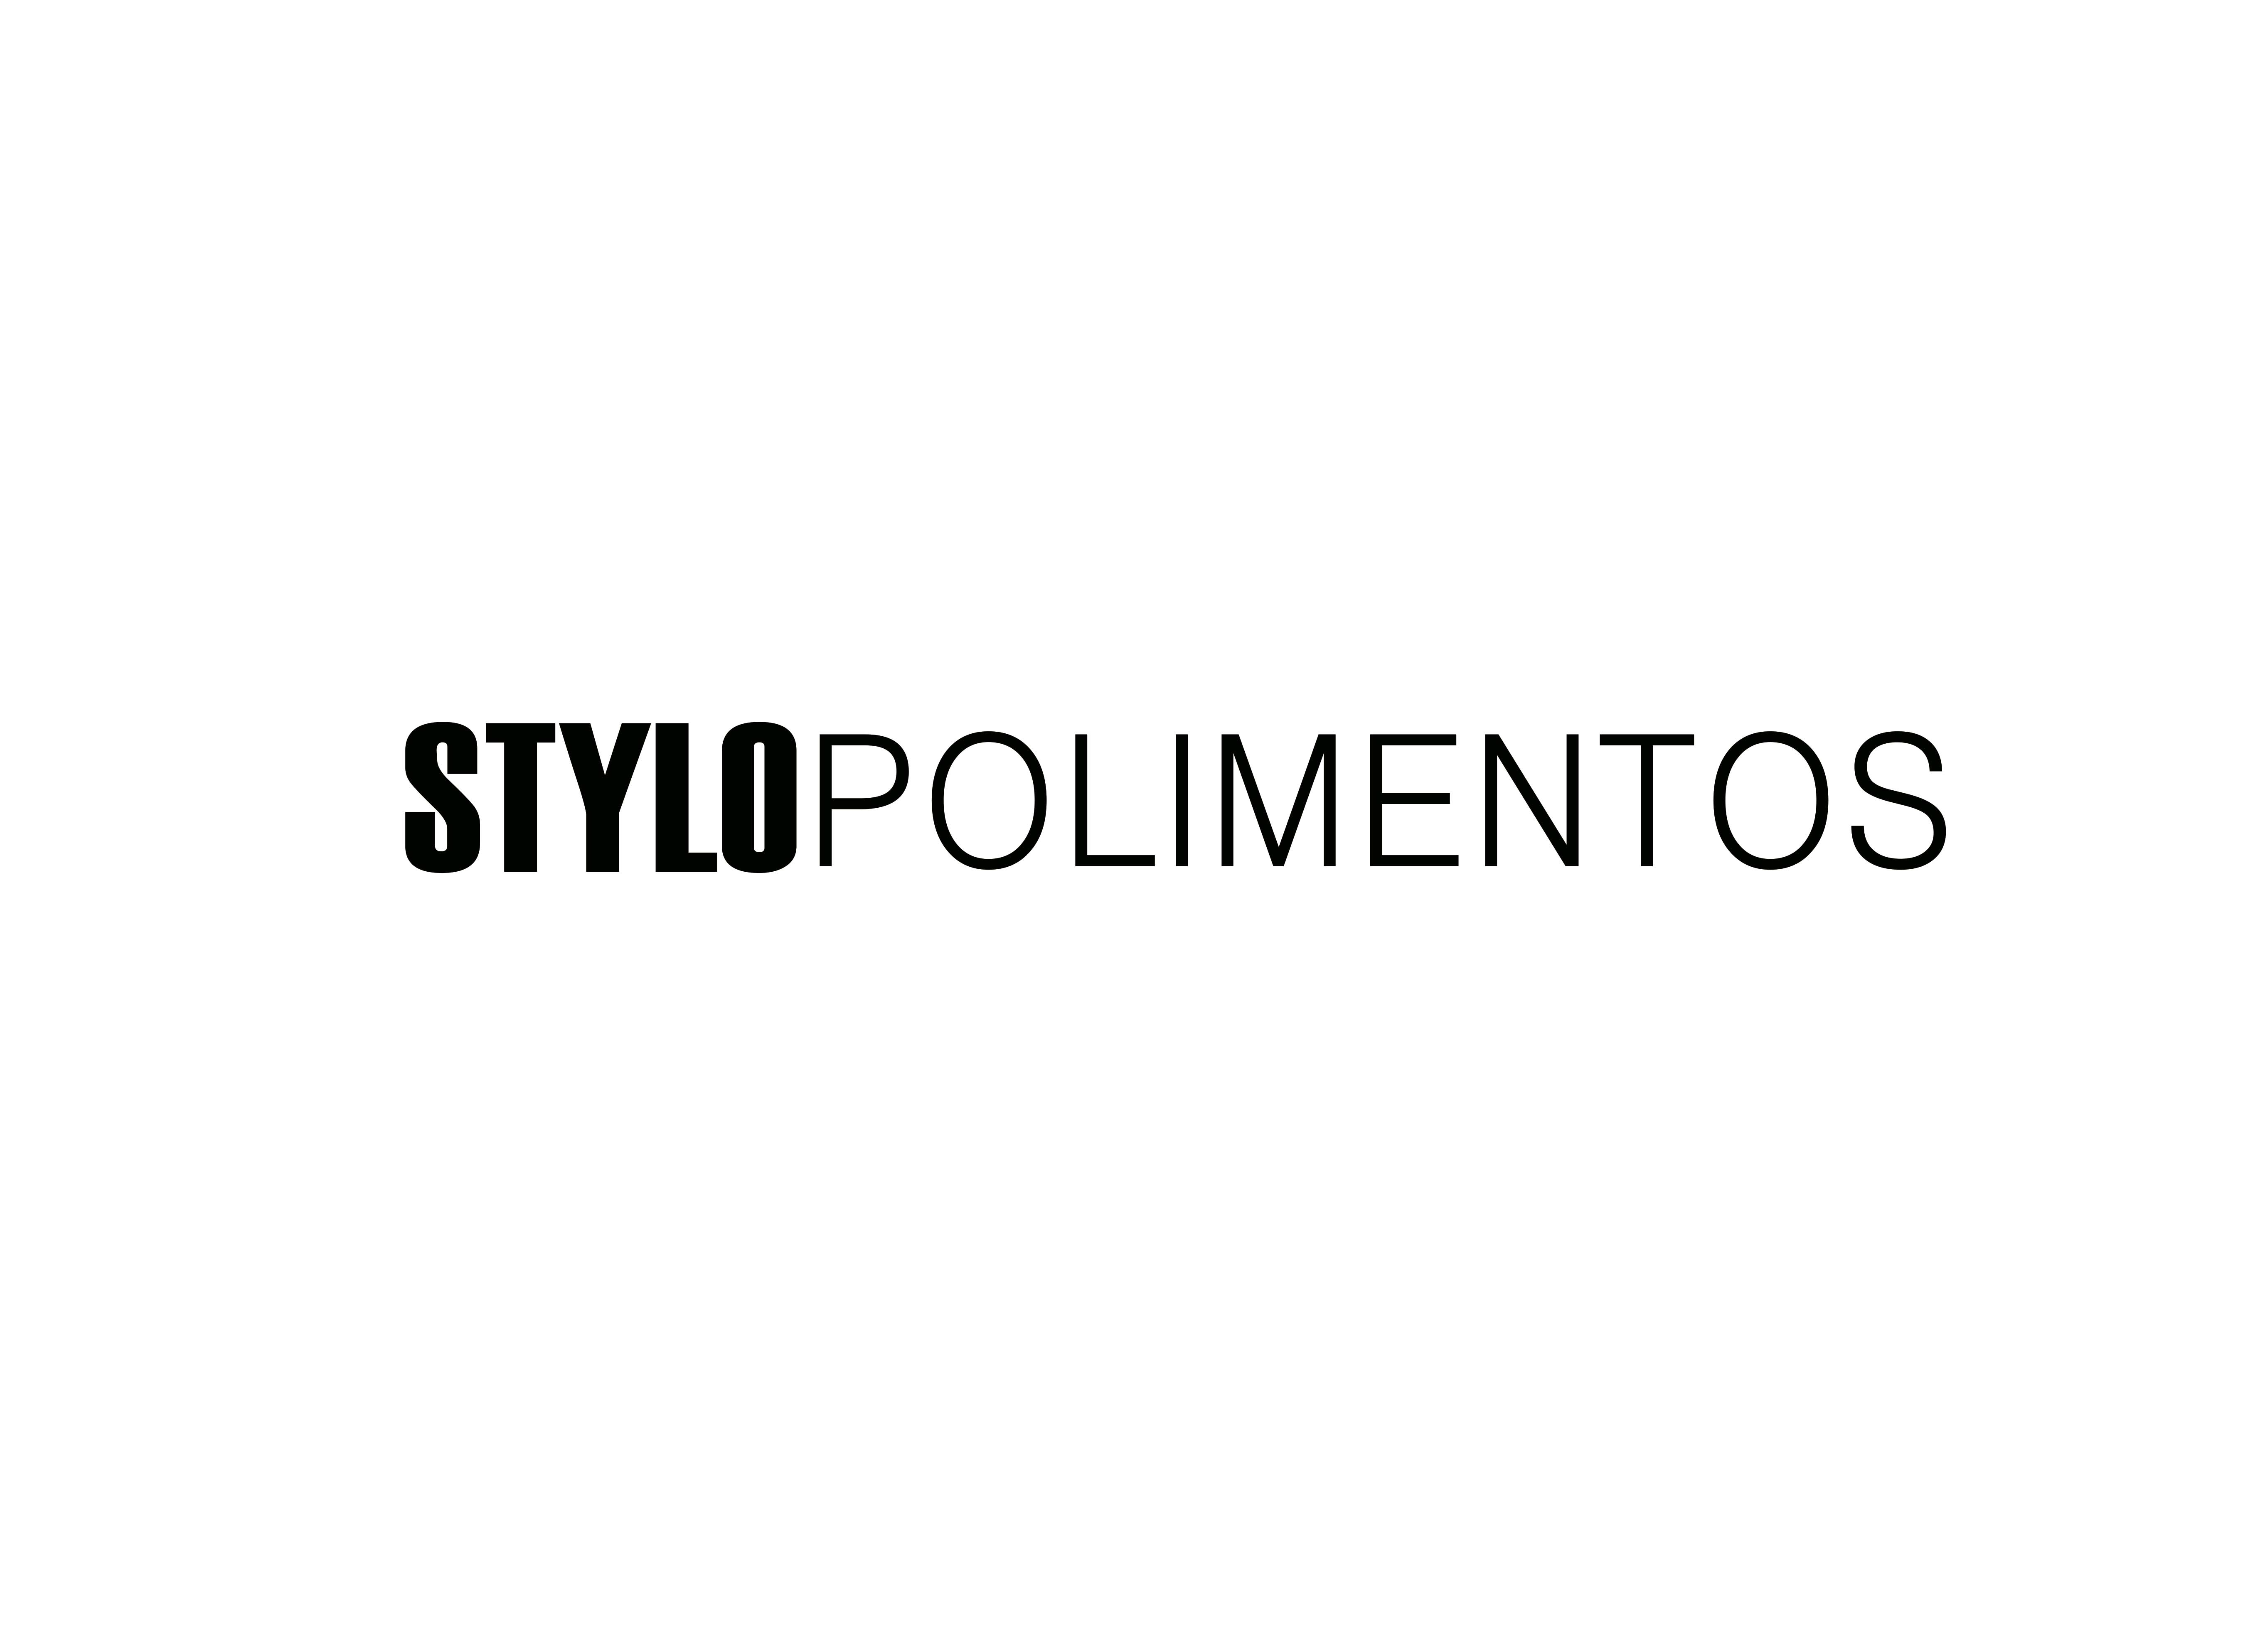 stylo-polimentos-drc-marketingdigital